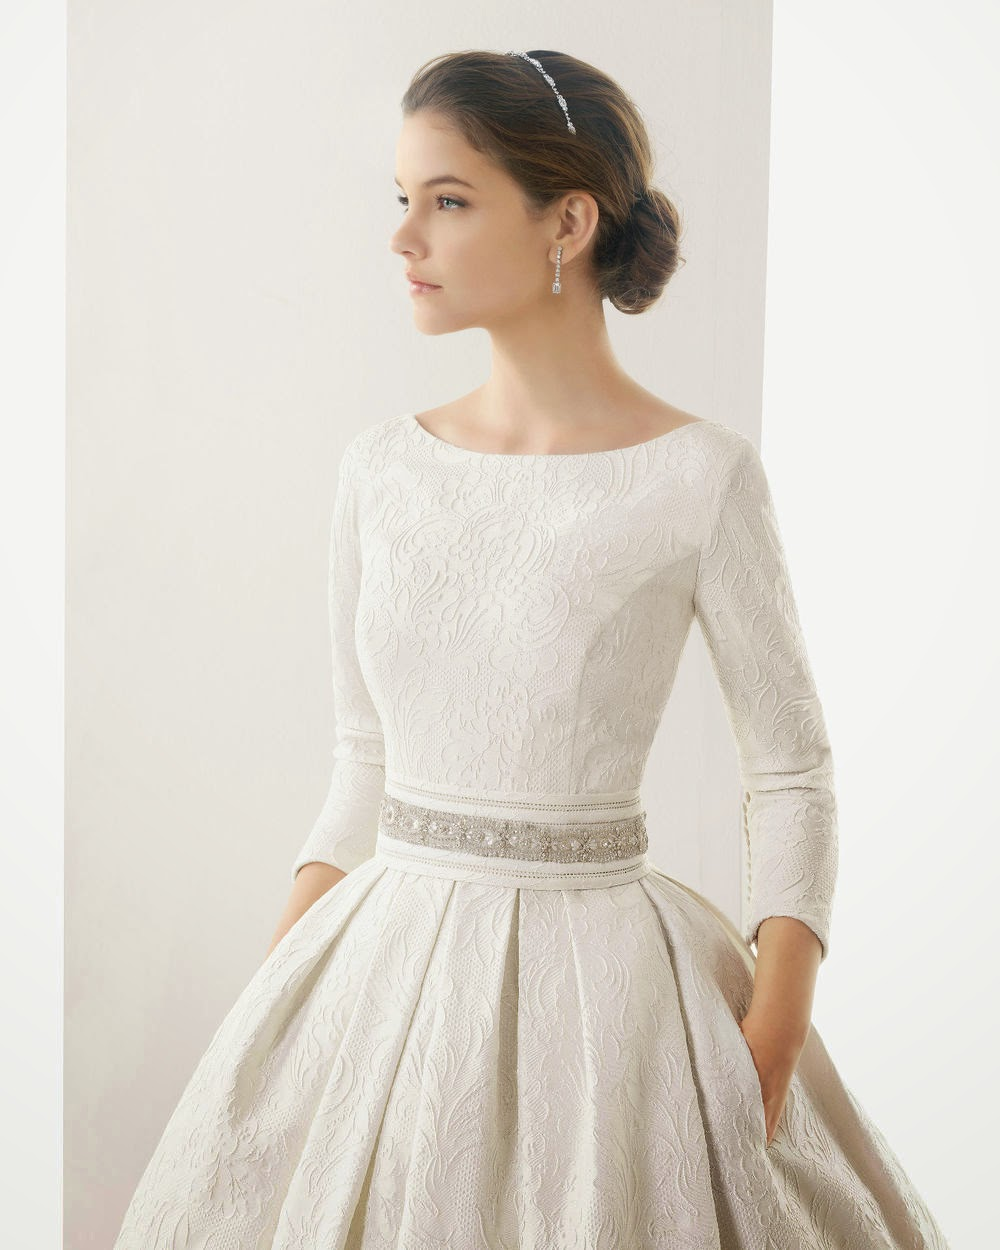 Brides bridesmaids fashion those style wedding dresses for Wedding dress long sleeves